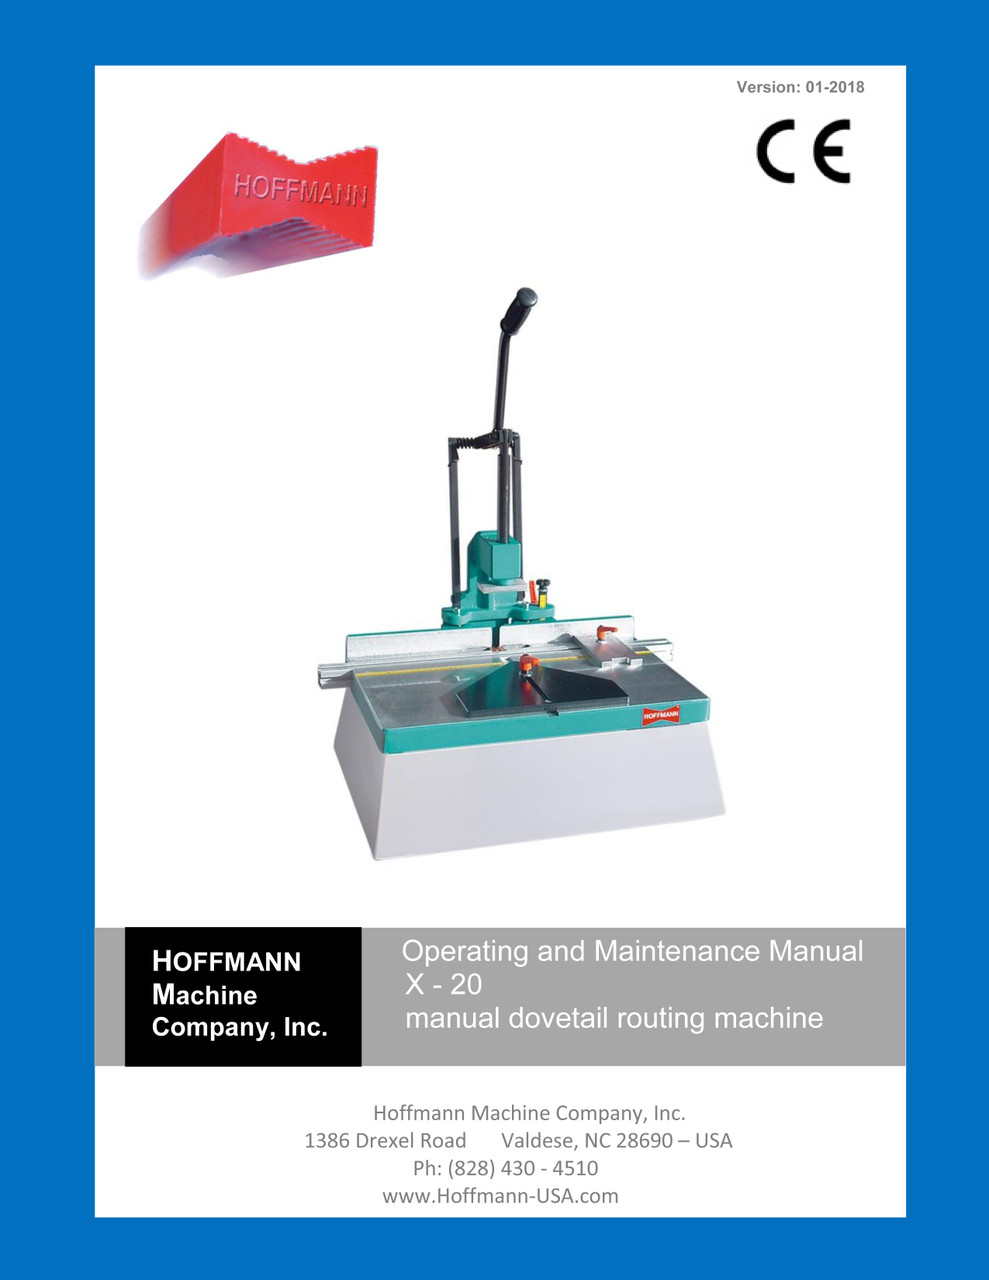 Operating Manual for Hoffmann X-20 dovetail routing machine